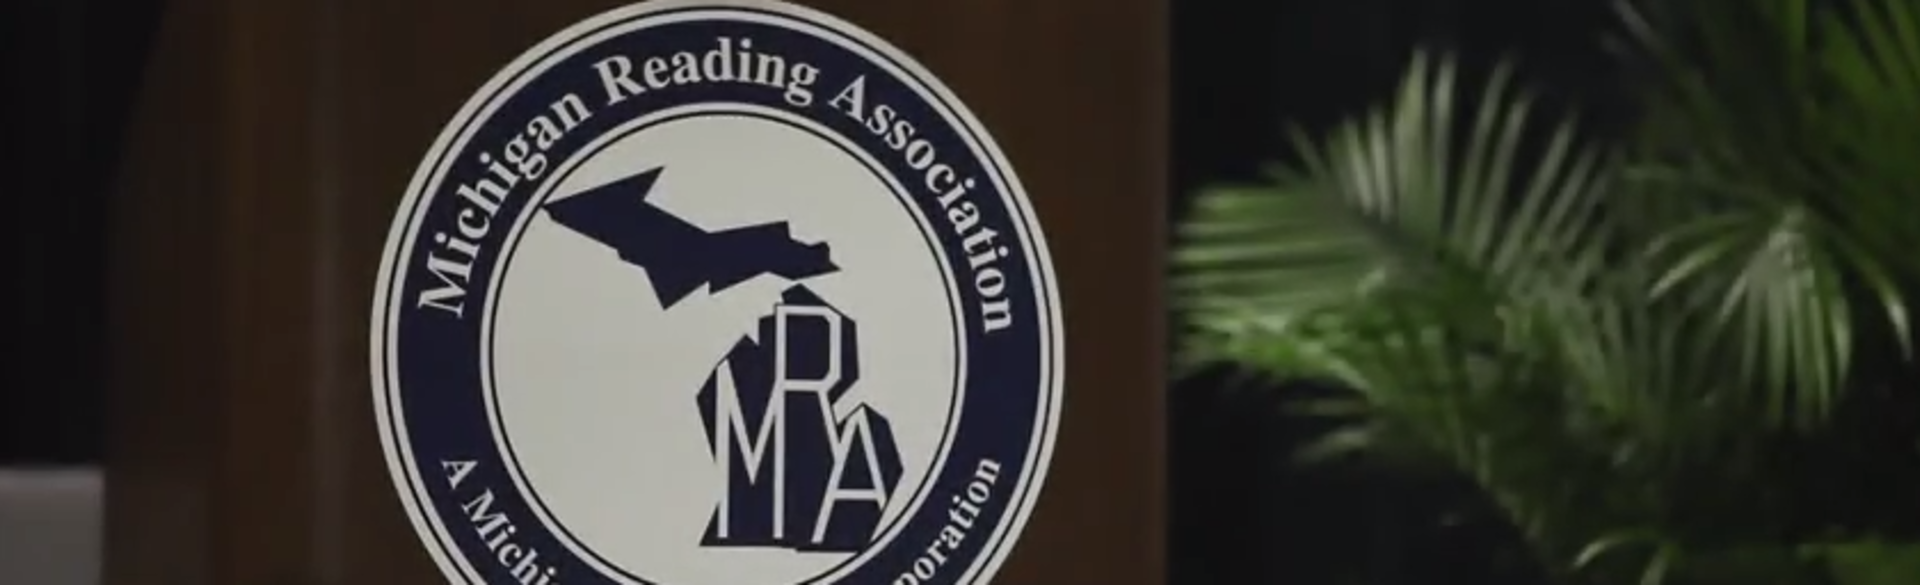 Michigan Reading Association